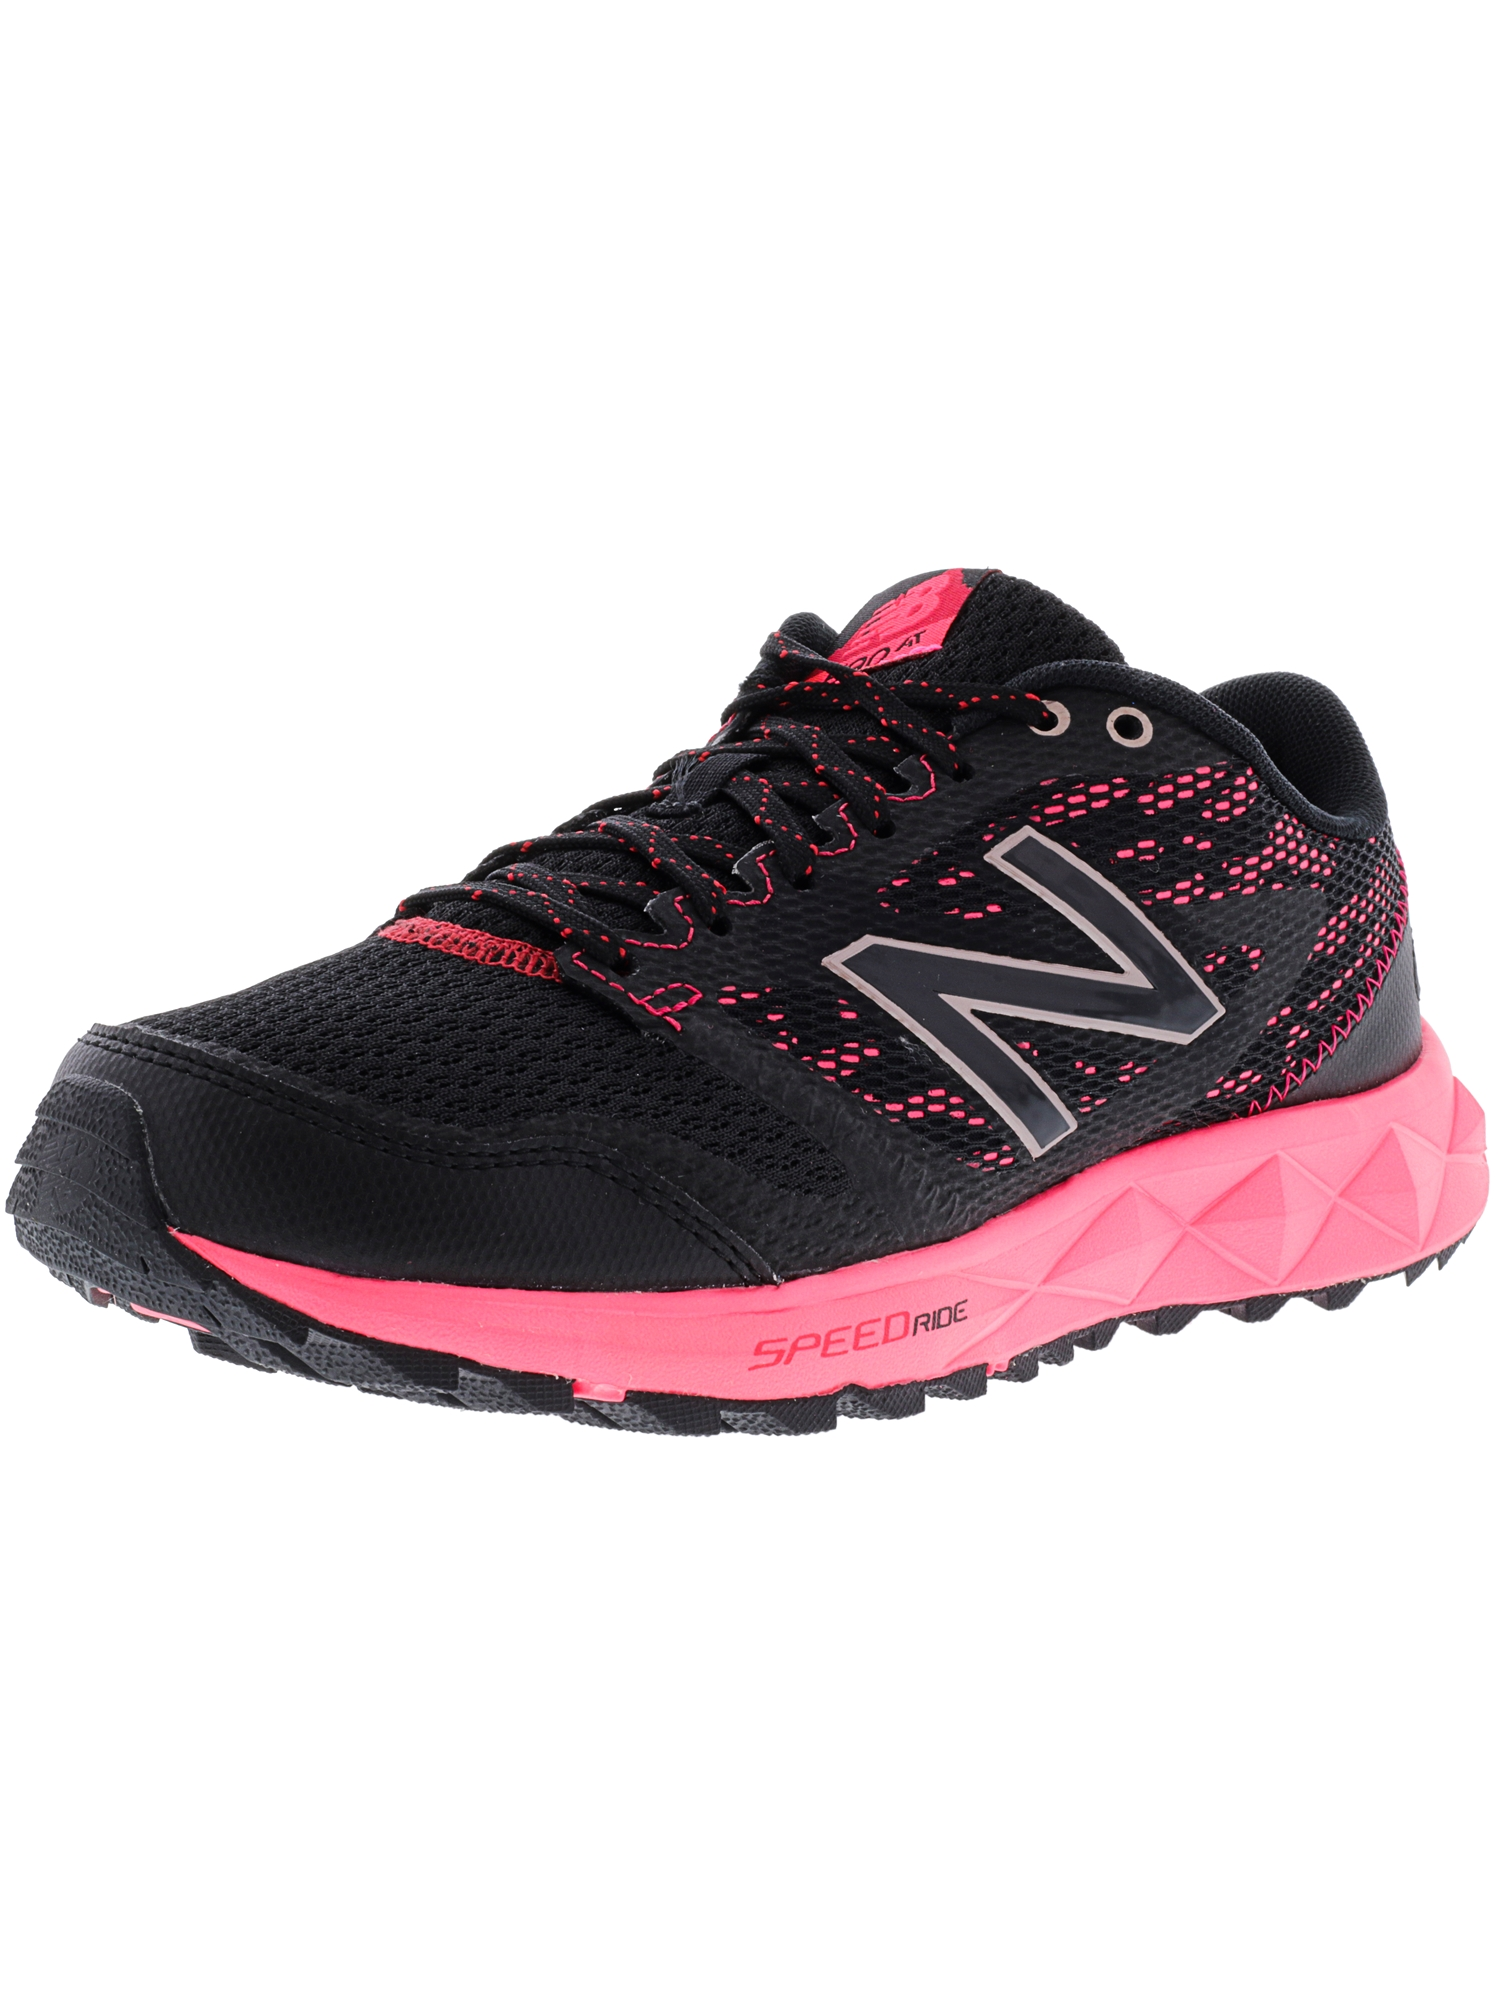 New Balance Women's Wt590 Lb2 Ankle-High Trail Runner 6W by New Balance